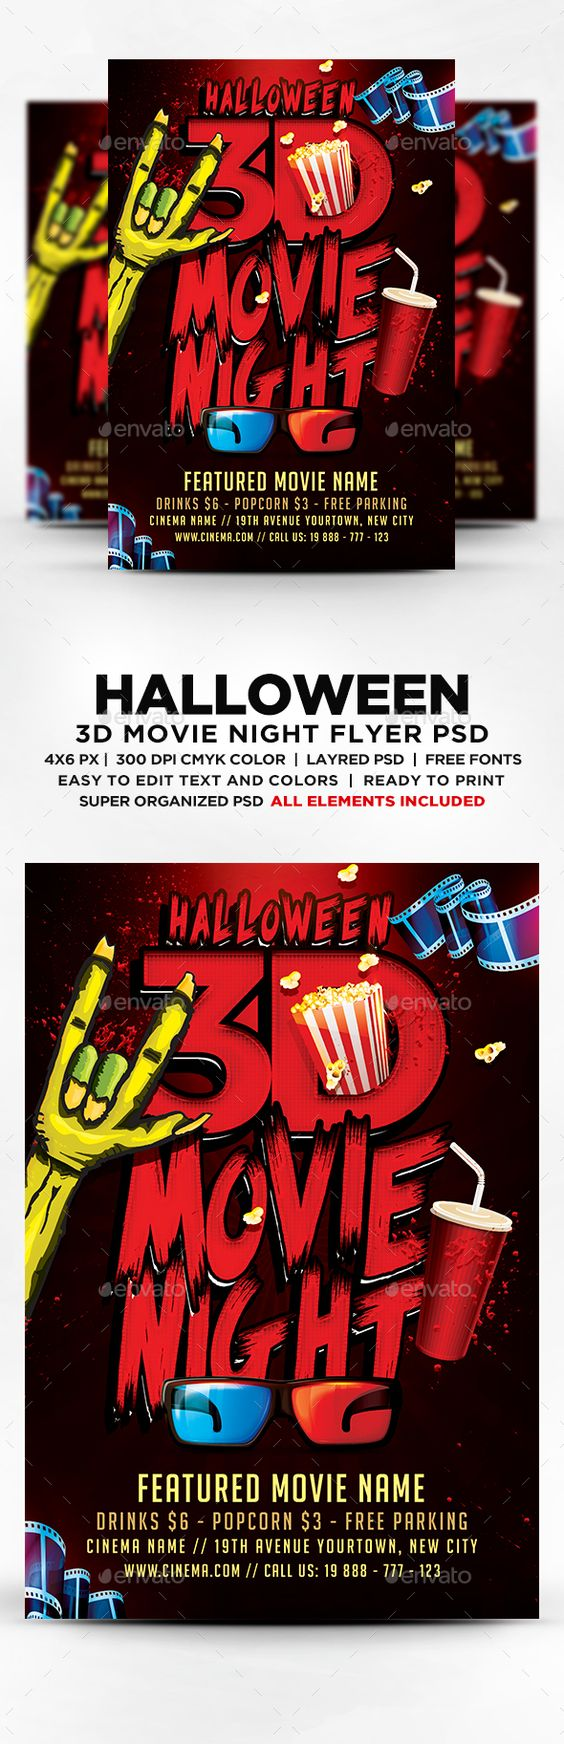 158 Graphic River Movie Night Flyer Templates Kinzi21 Trend Of